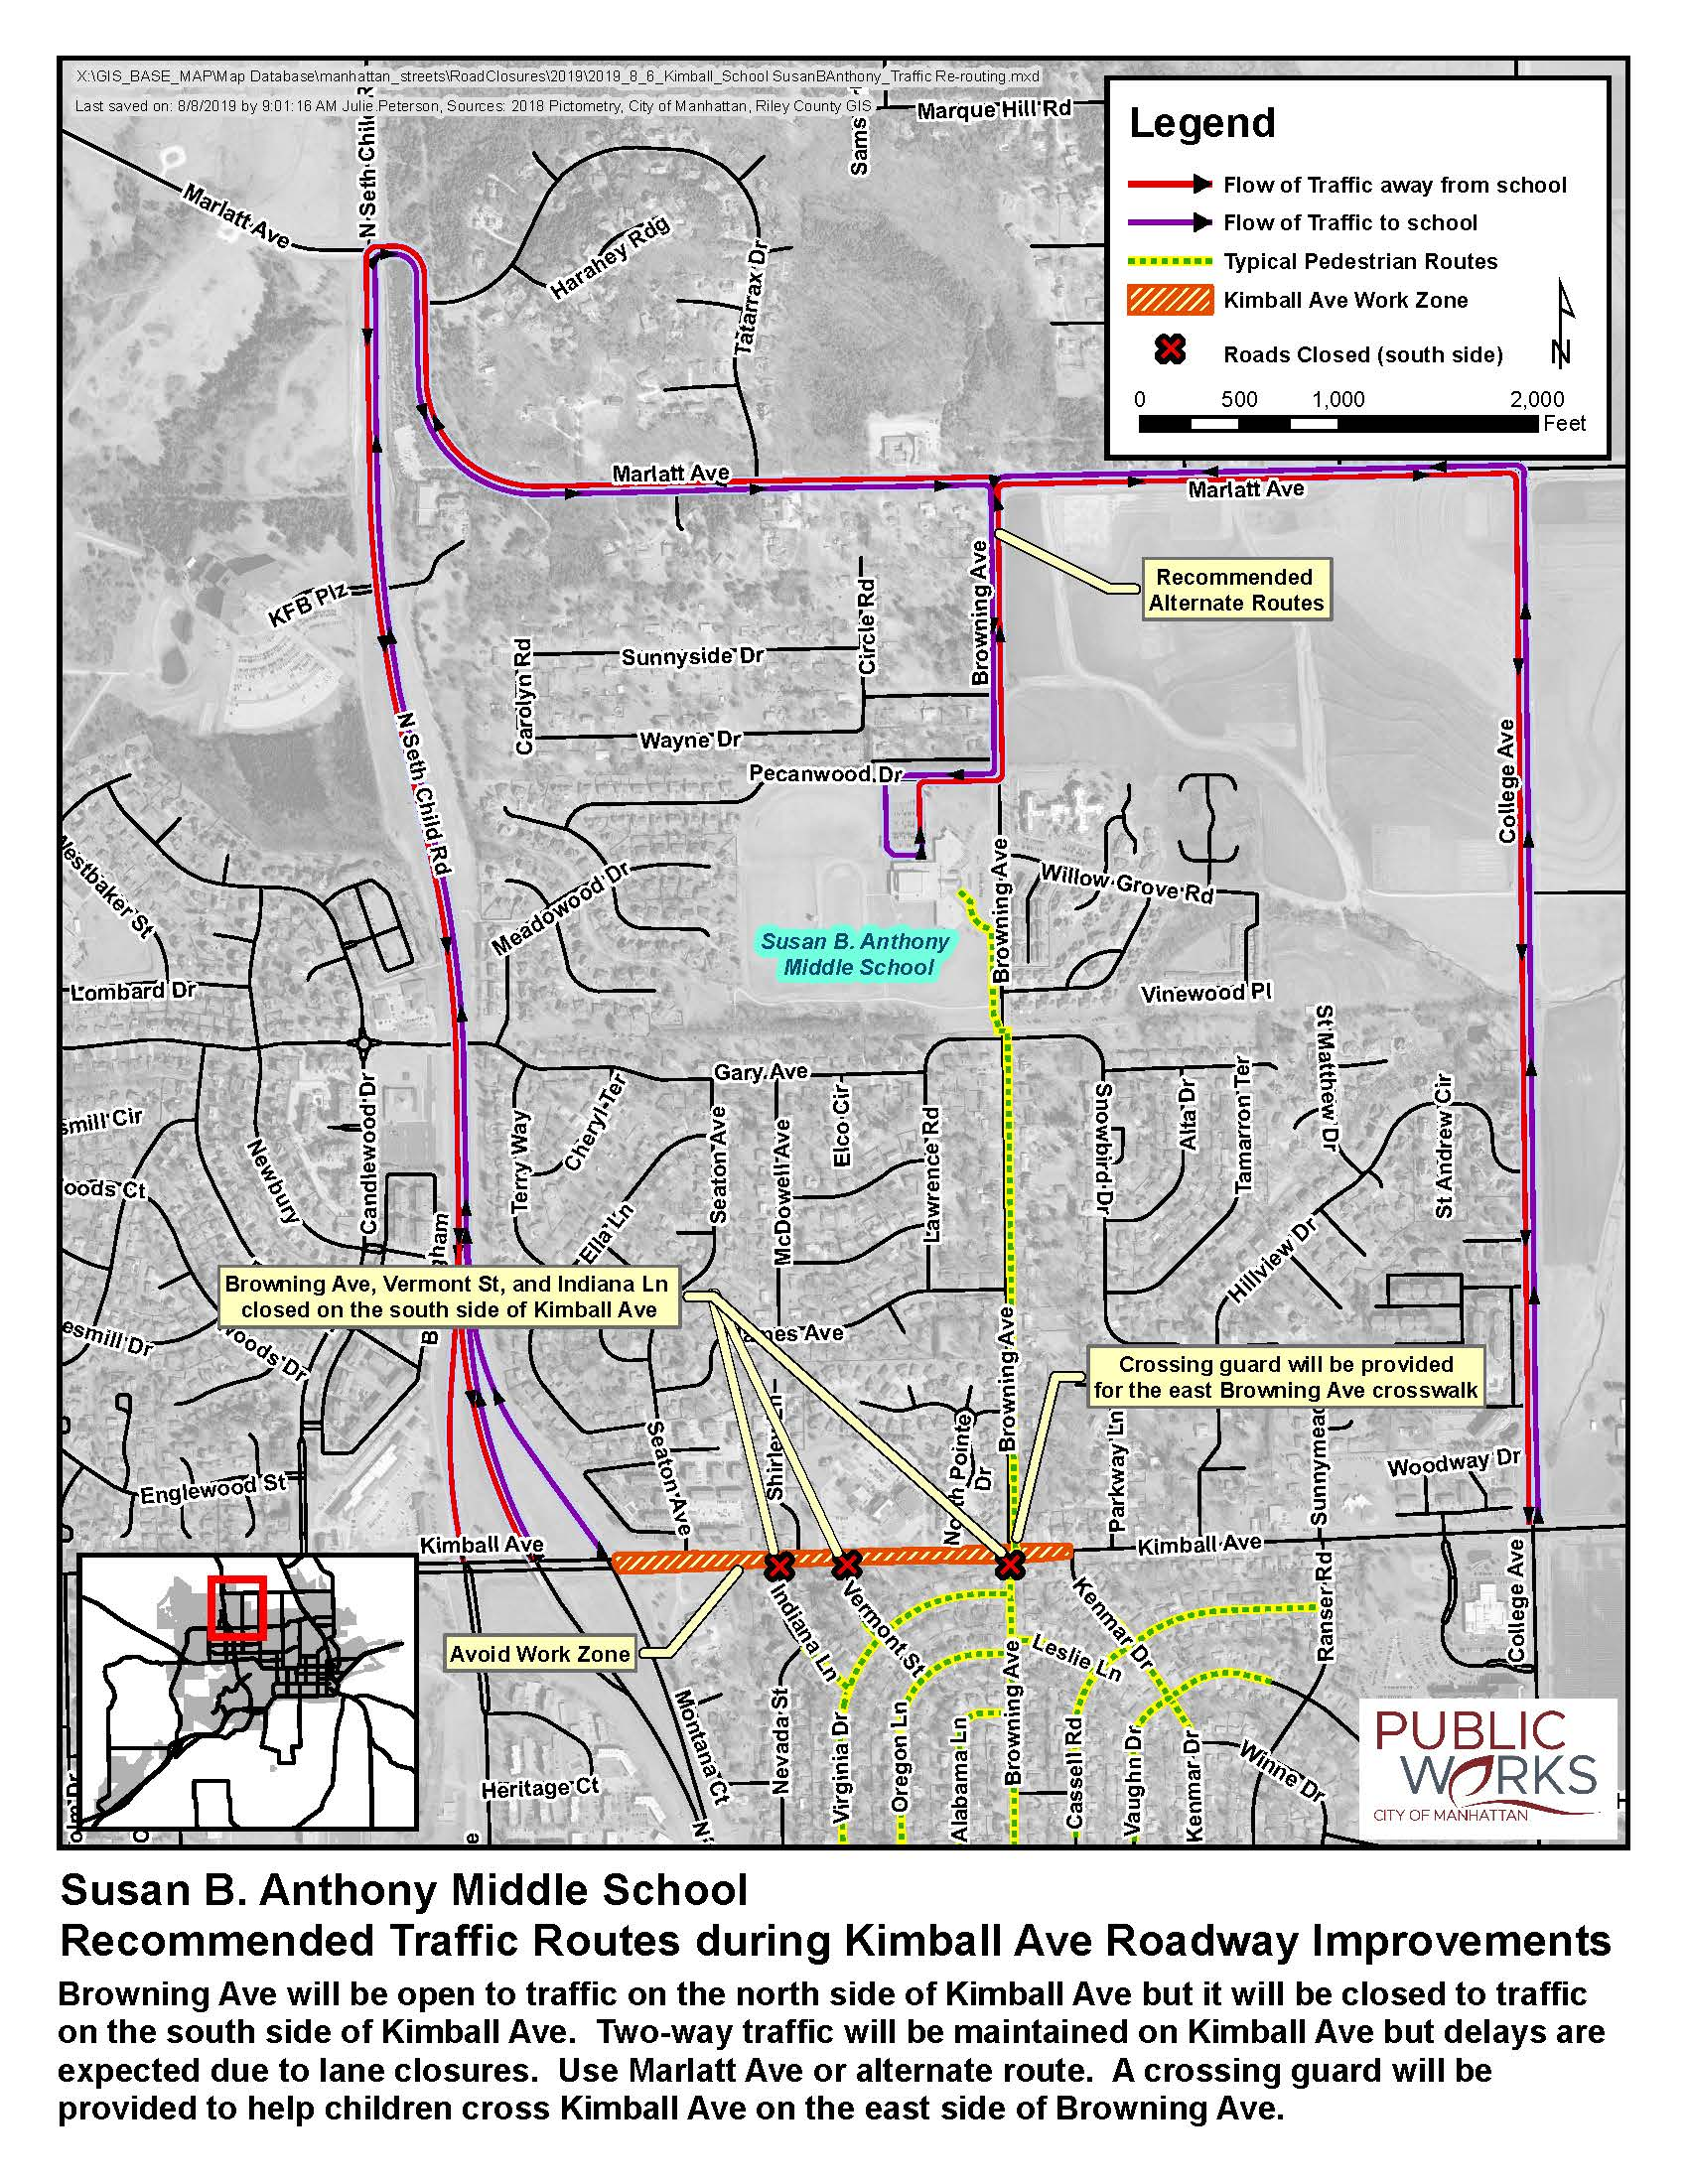 map of traffic re-routing for Susan B Anthony Middle School